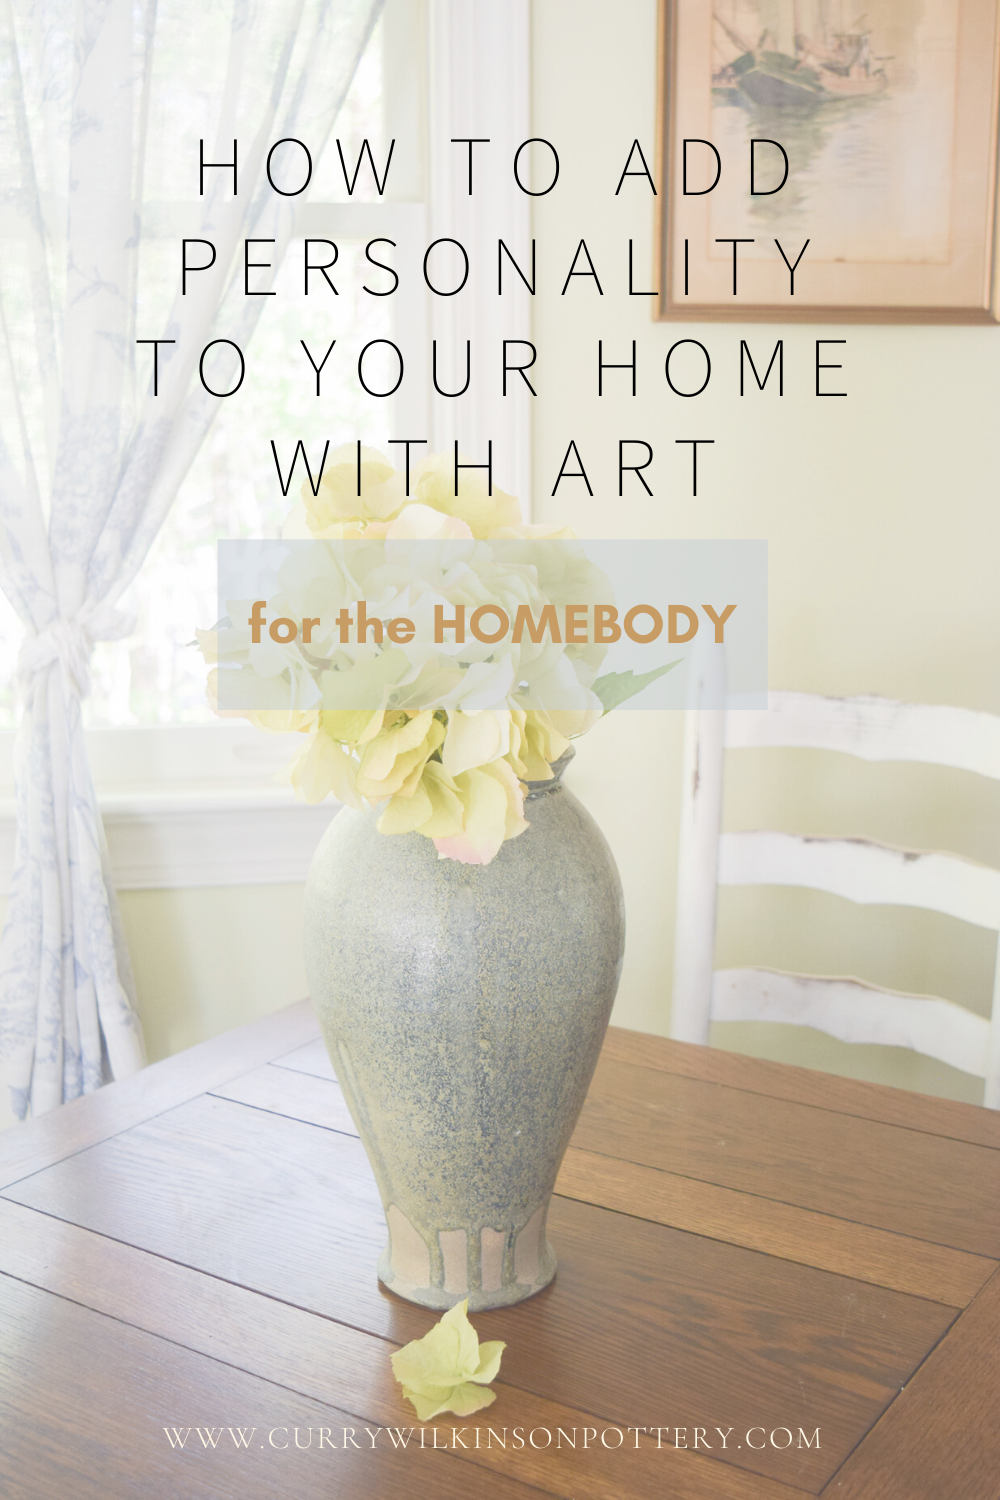 Grab our FREE guide: add personality to your home & tips for arranging with beautiful pottery & art. For your living room & other rooms in your home! #grandmillennialgoals #grandmillenial #grandmillenialstyle #housebeautiful #potterydesign #potterylovers #timelessclassic #houseandhome #classicdesign #timelessdesign #potterycollector #livingroomstyling #interiordesigning #interiordesignlovers #southernliving #southernlivinghome #chinoiseriechicstyle #decoratewithart #mysouthernliving #potteryart